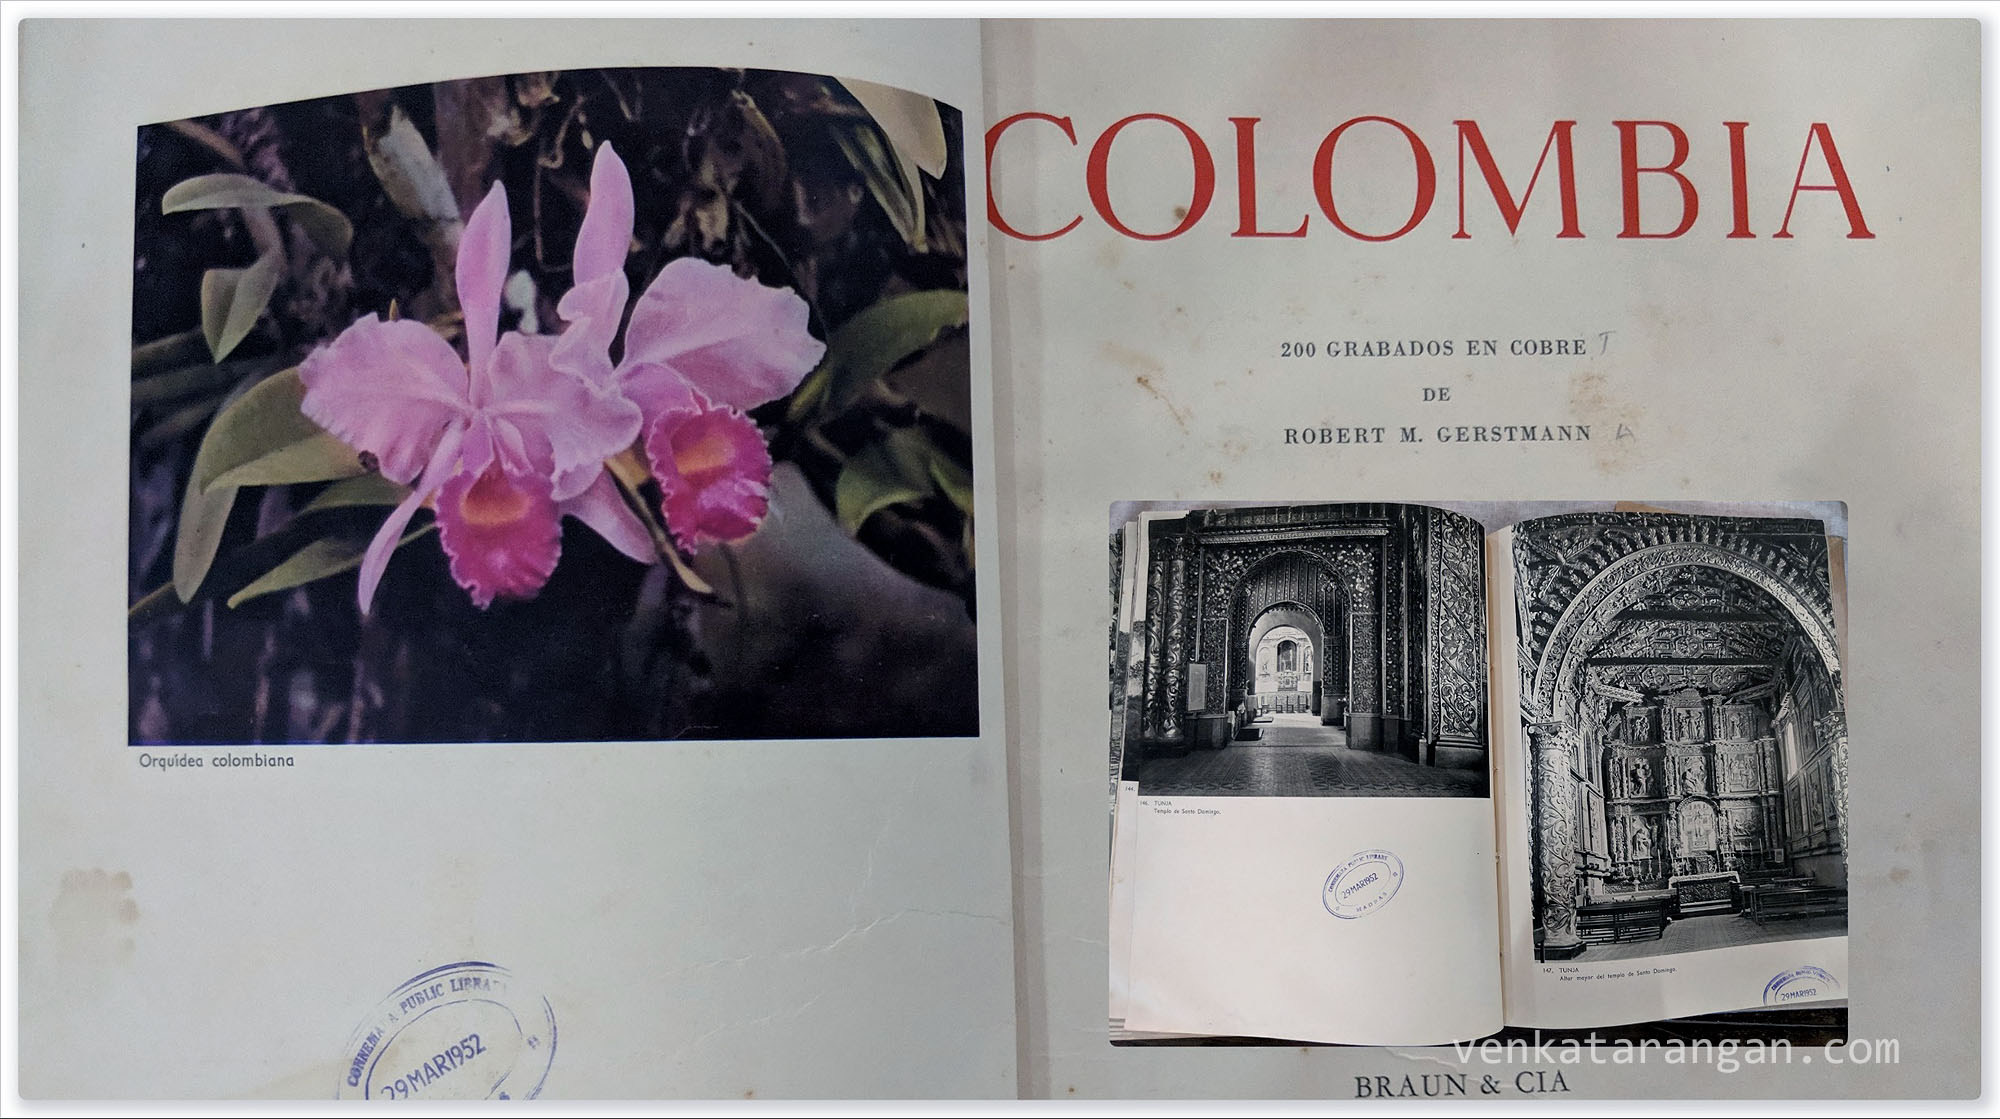 Not only from British India, but the library also has rare books from around the world. This one was about Colombia (200 Grabados En Cobre) by Robert M. Gerstmann with a library seal from 1952